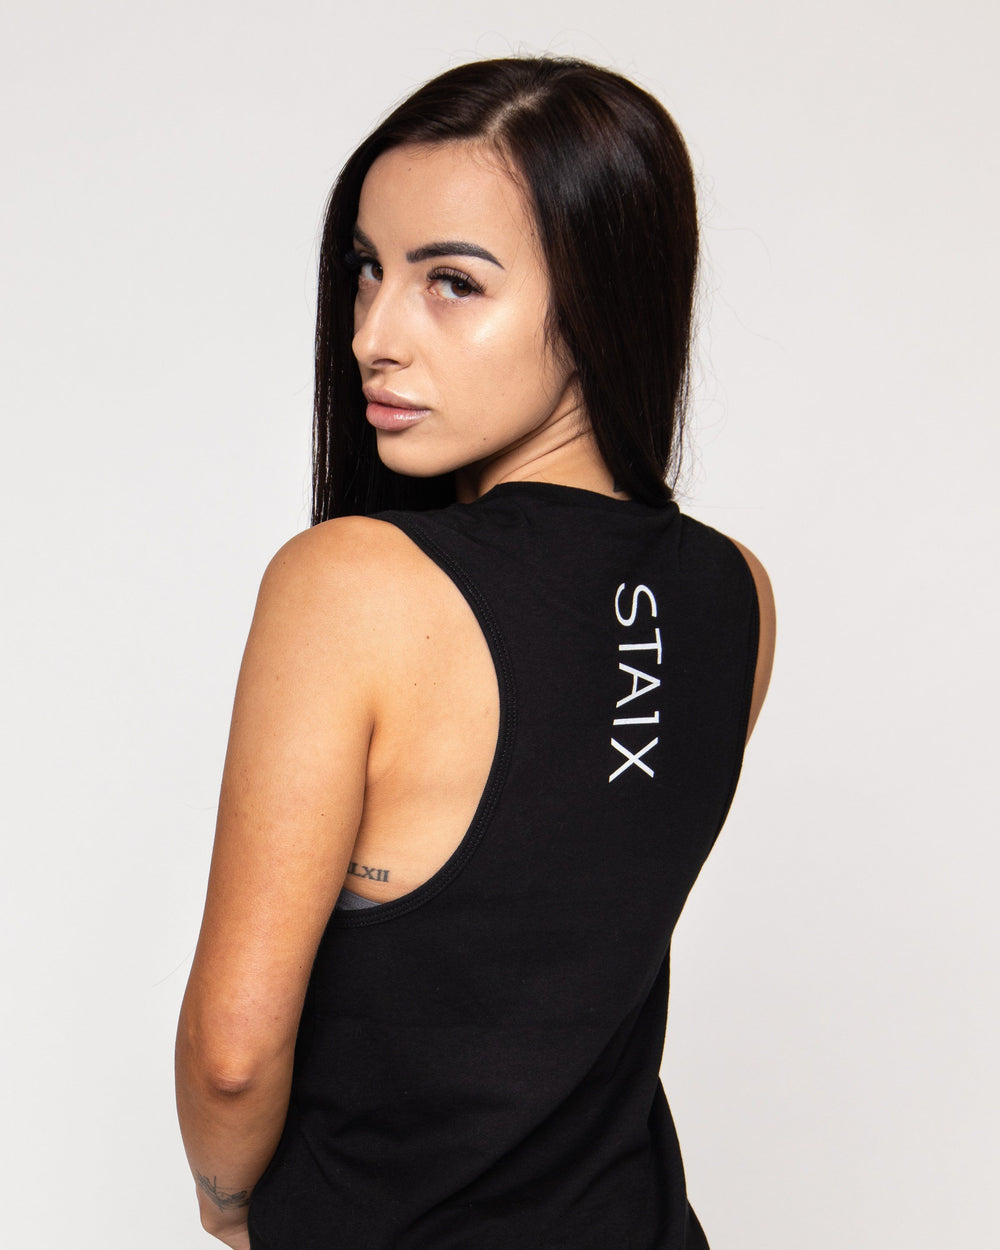 All Day Muscle Tank - Black WOMEN'S TANKS STAIX